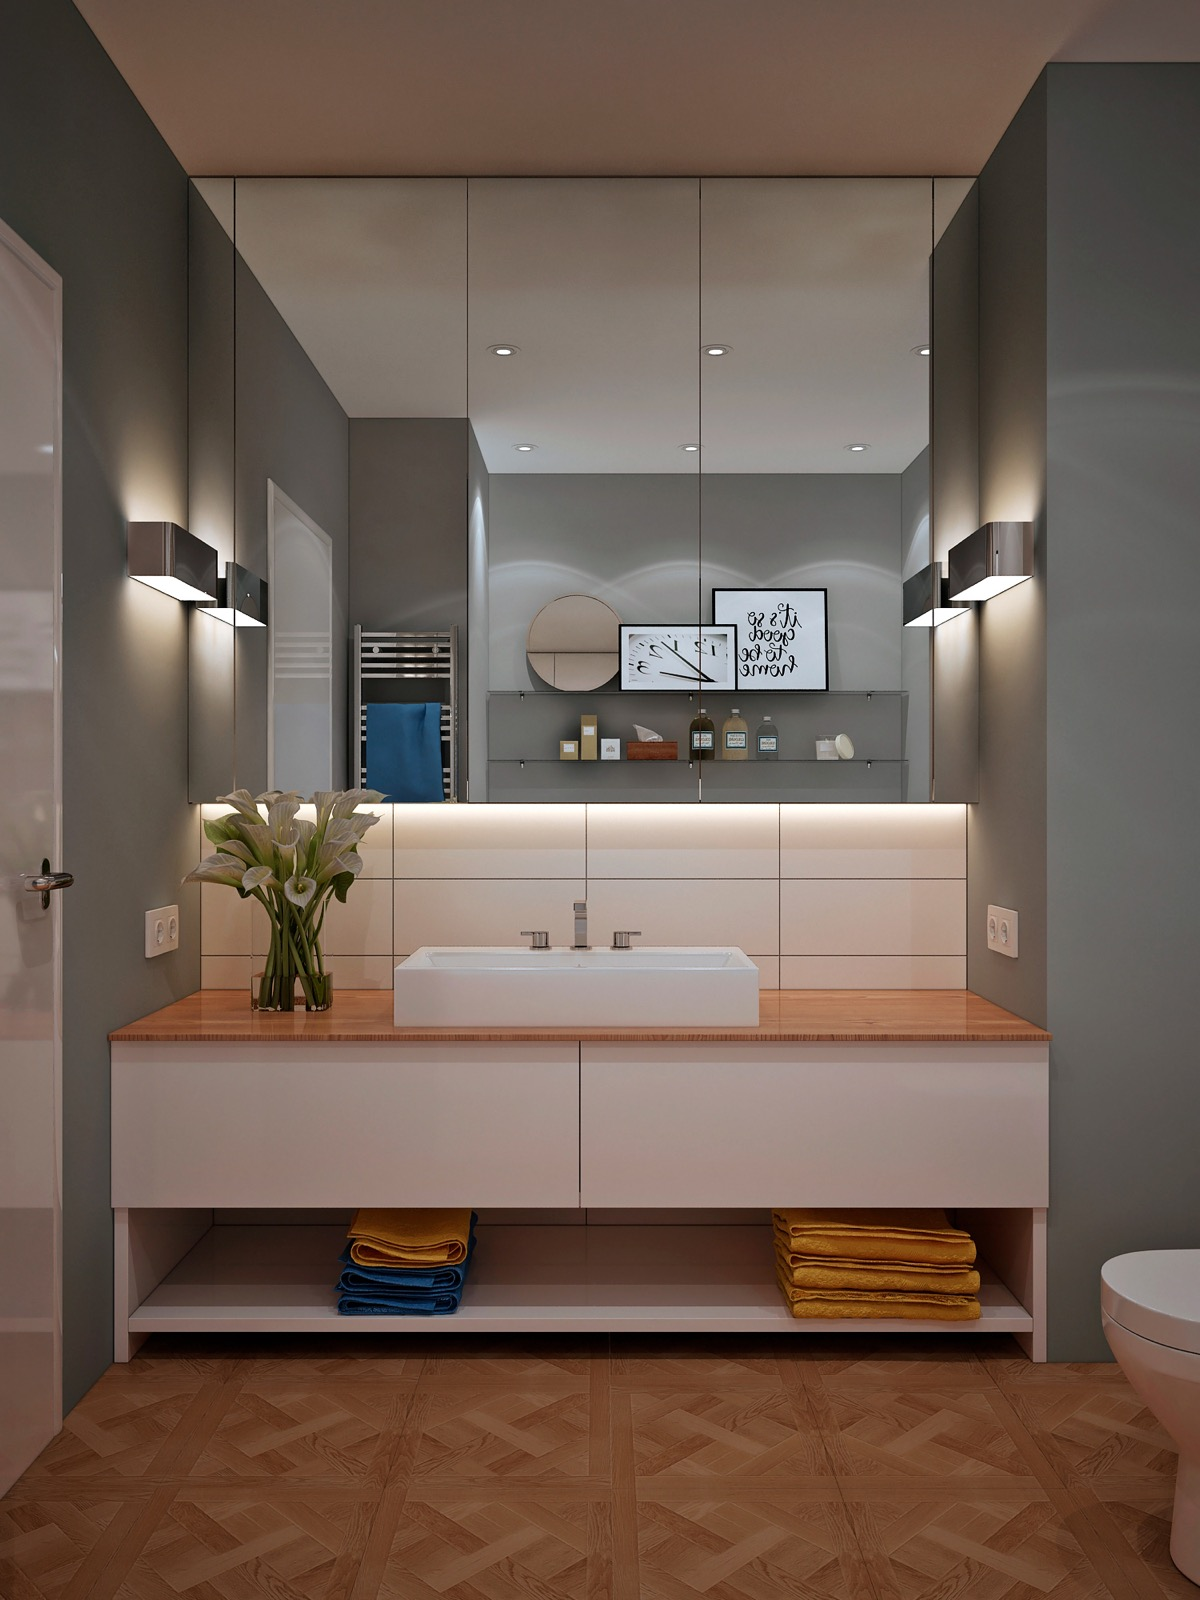 40 Modern Bathroom Vanities That Overflow With Style images 8